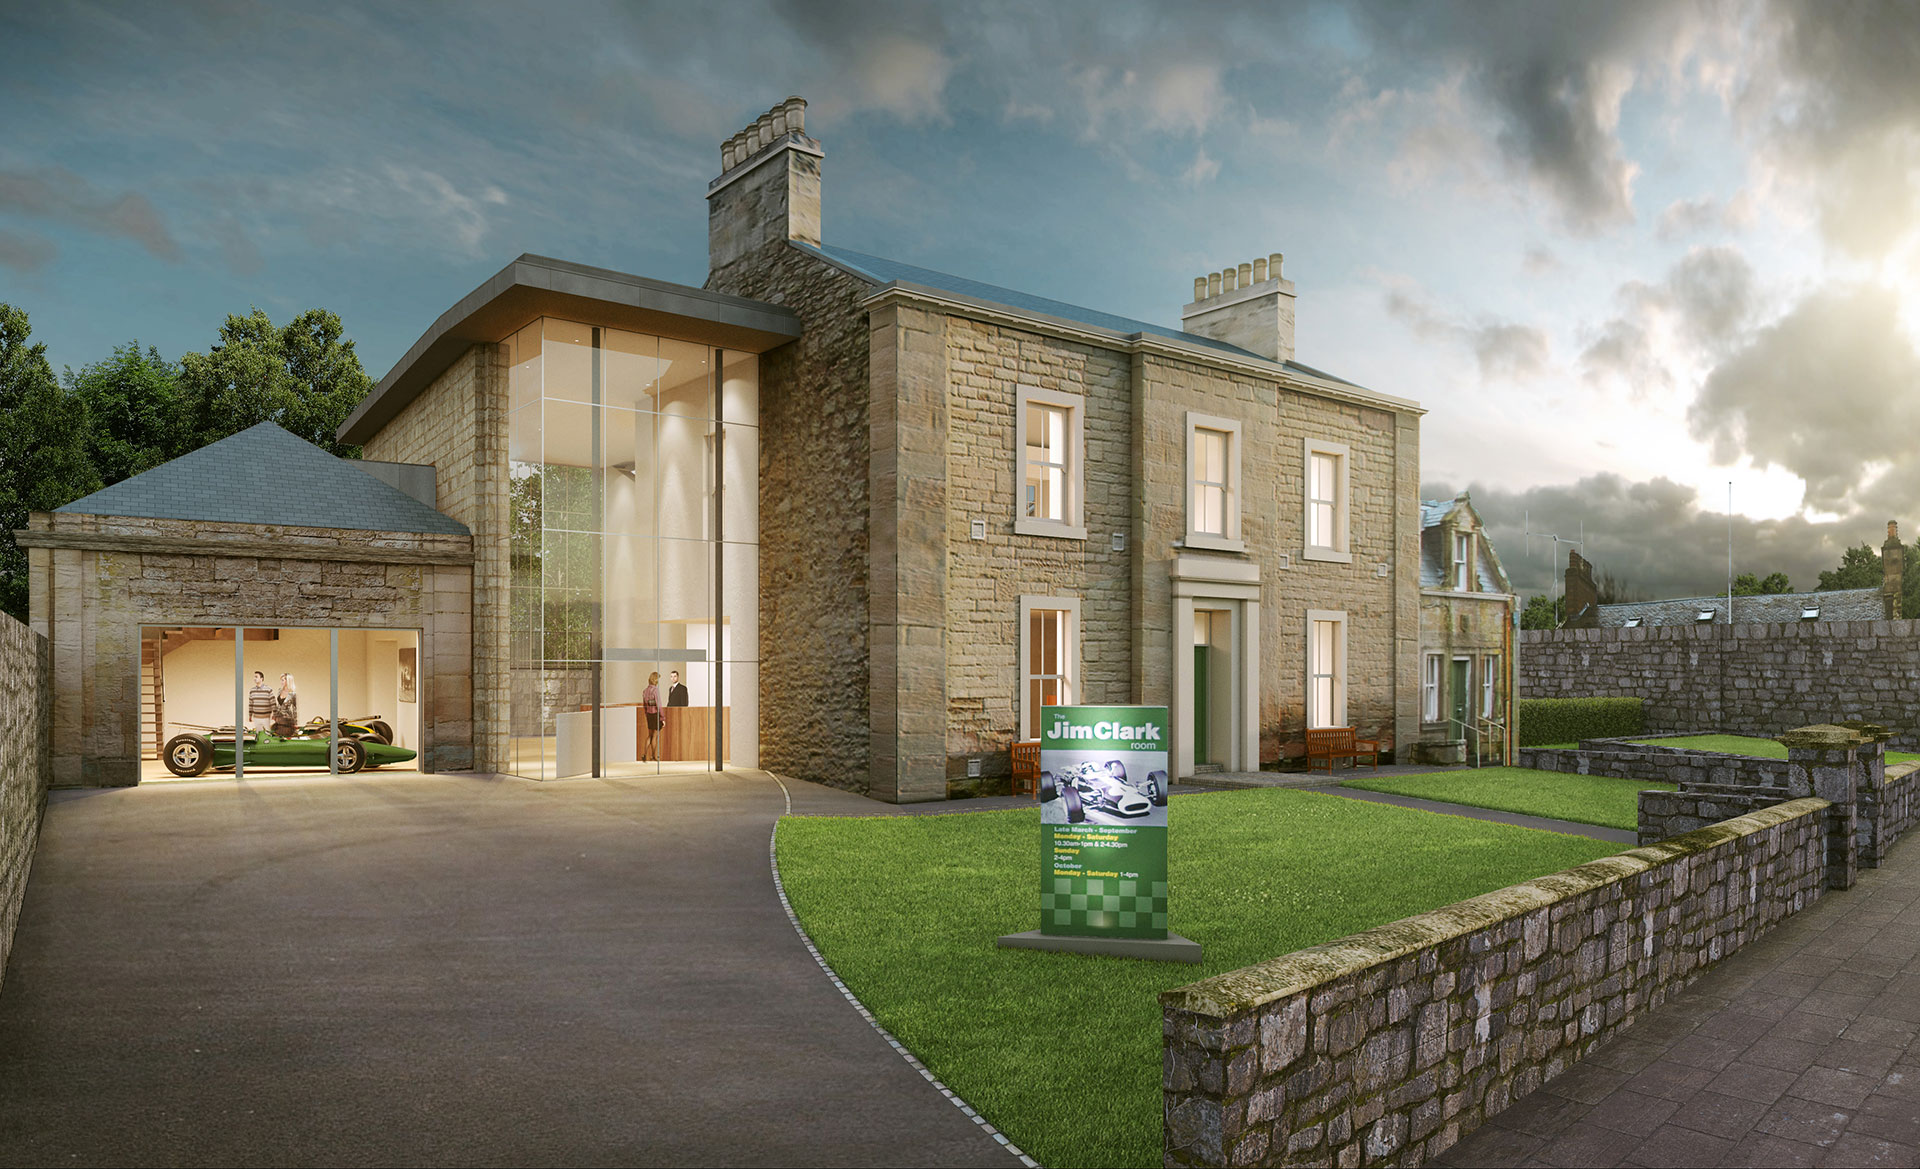 The new museum has been backed the Jim Clark Trust.